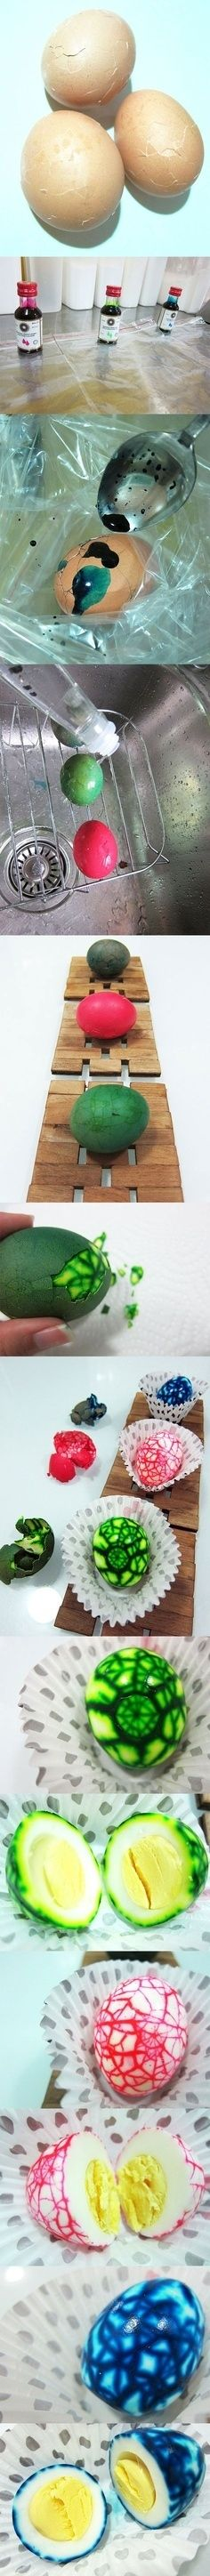 Crack eggshells for trippy dye patterns. | Community Post: 35 Clever Food Hacks That Will Change Your Life